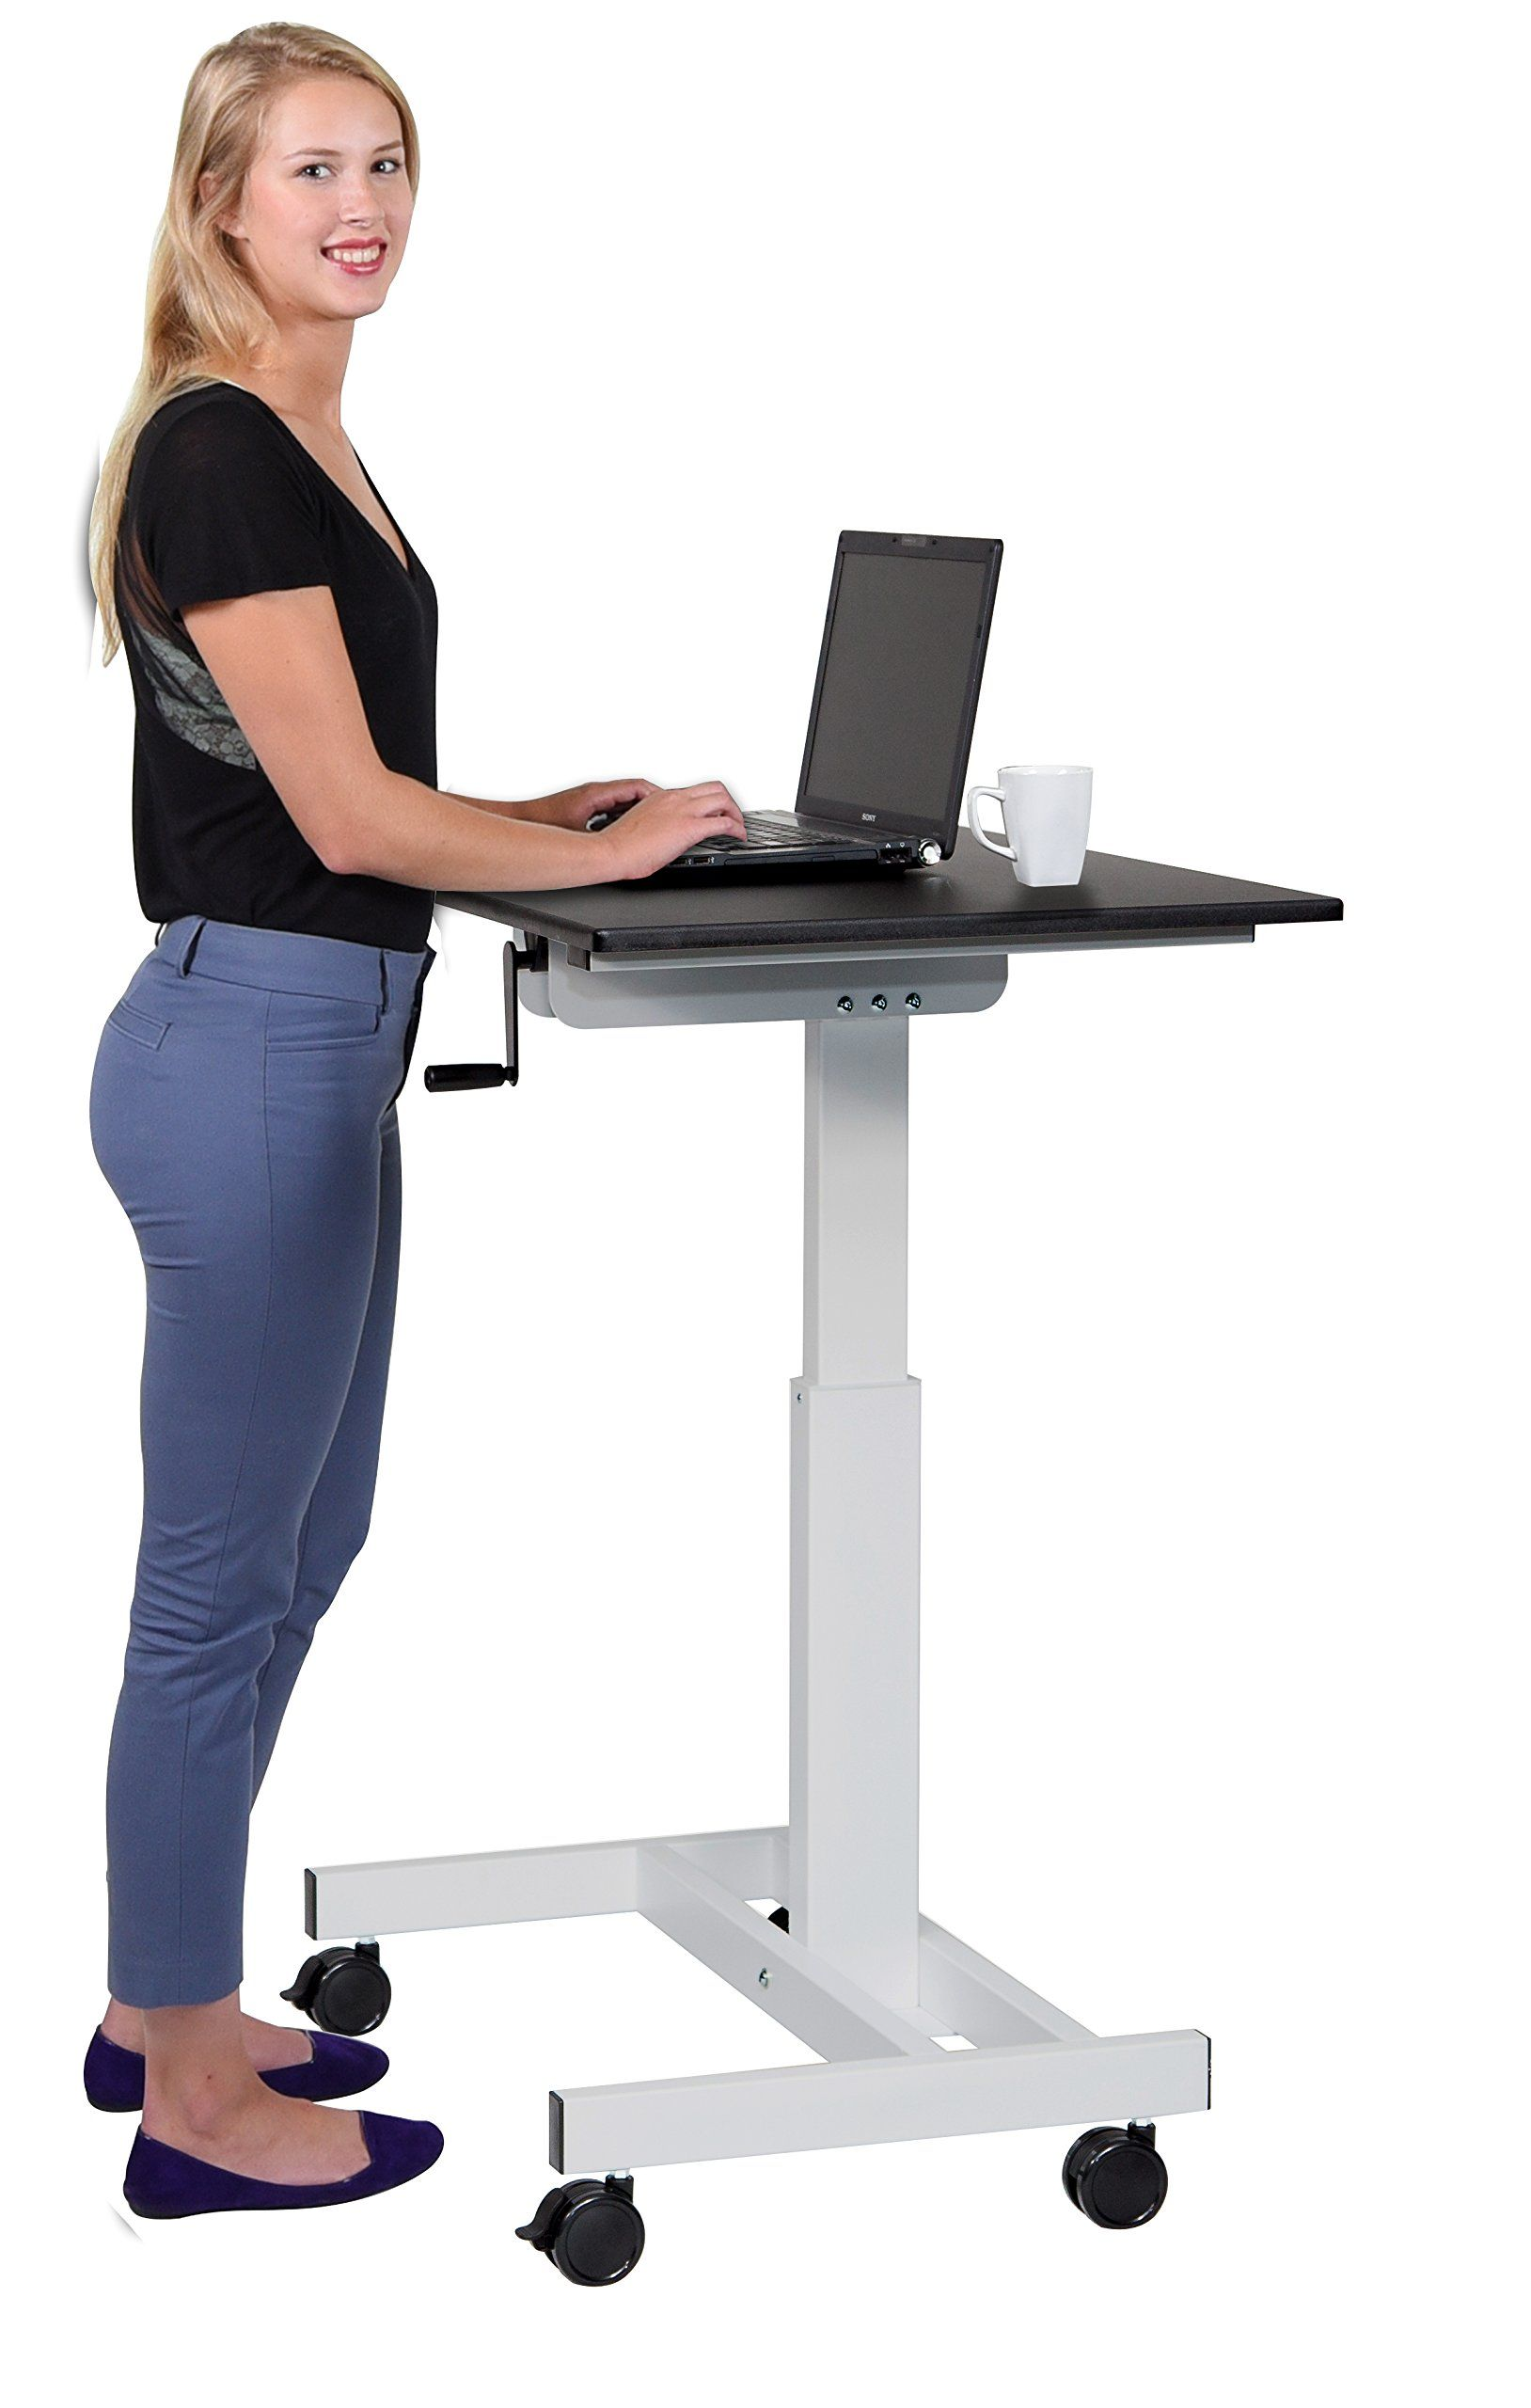 crank frame itm adjustable black vivo workstation standing up system ergonomic desk stand manual leg height